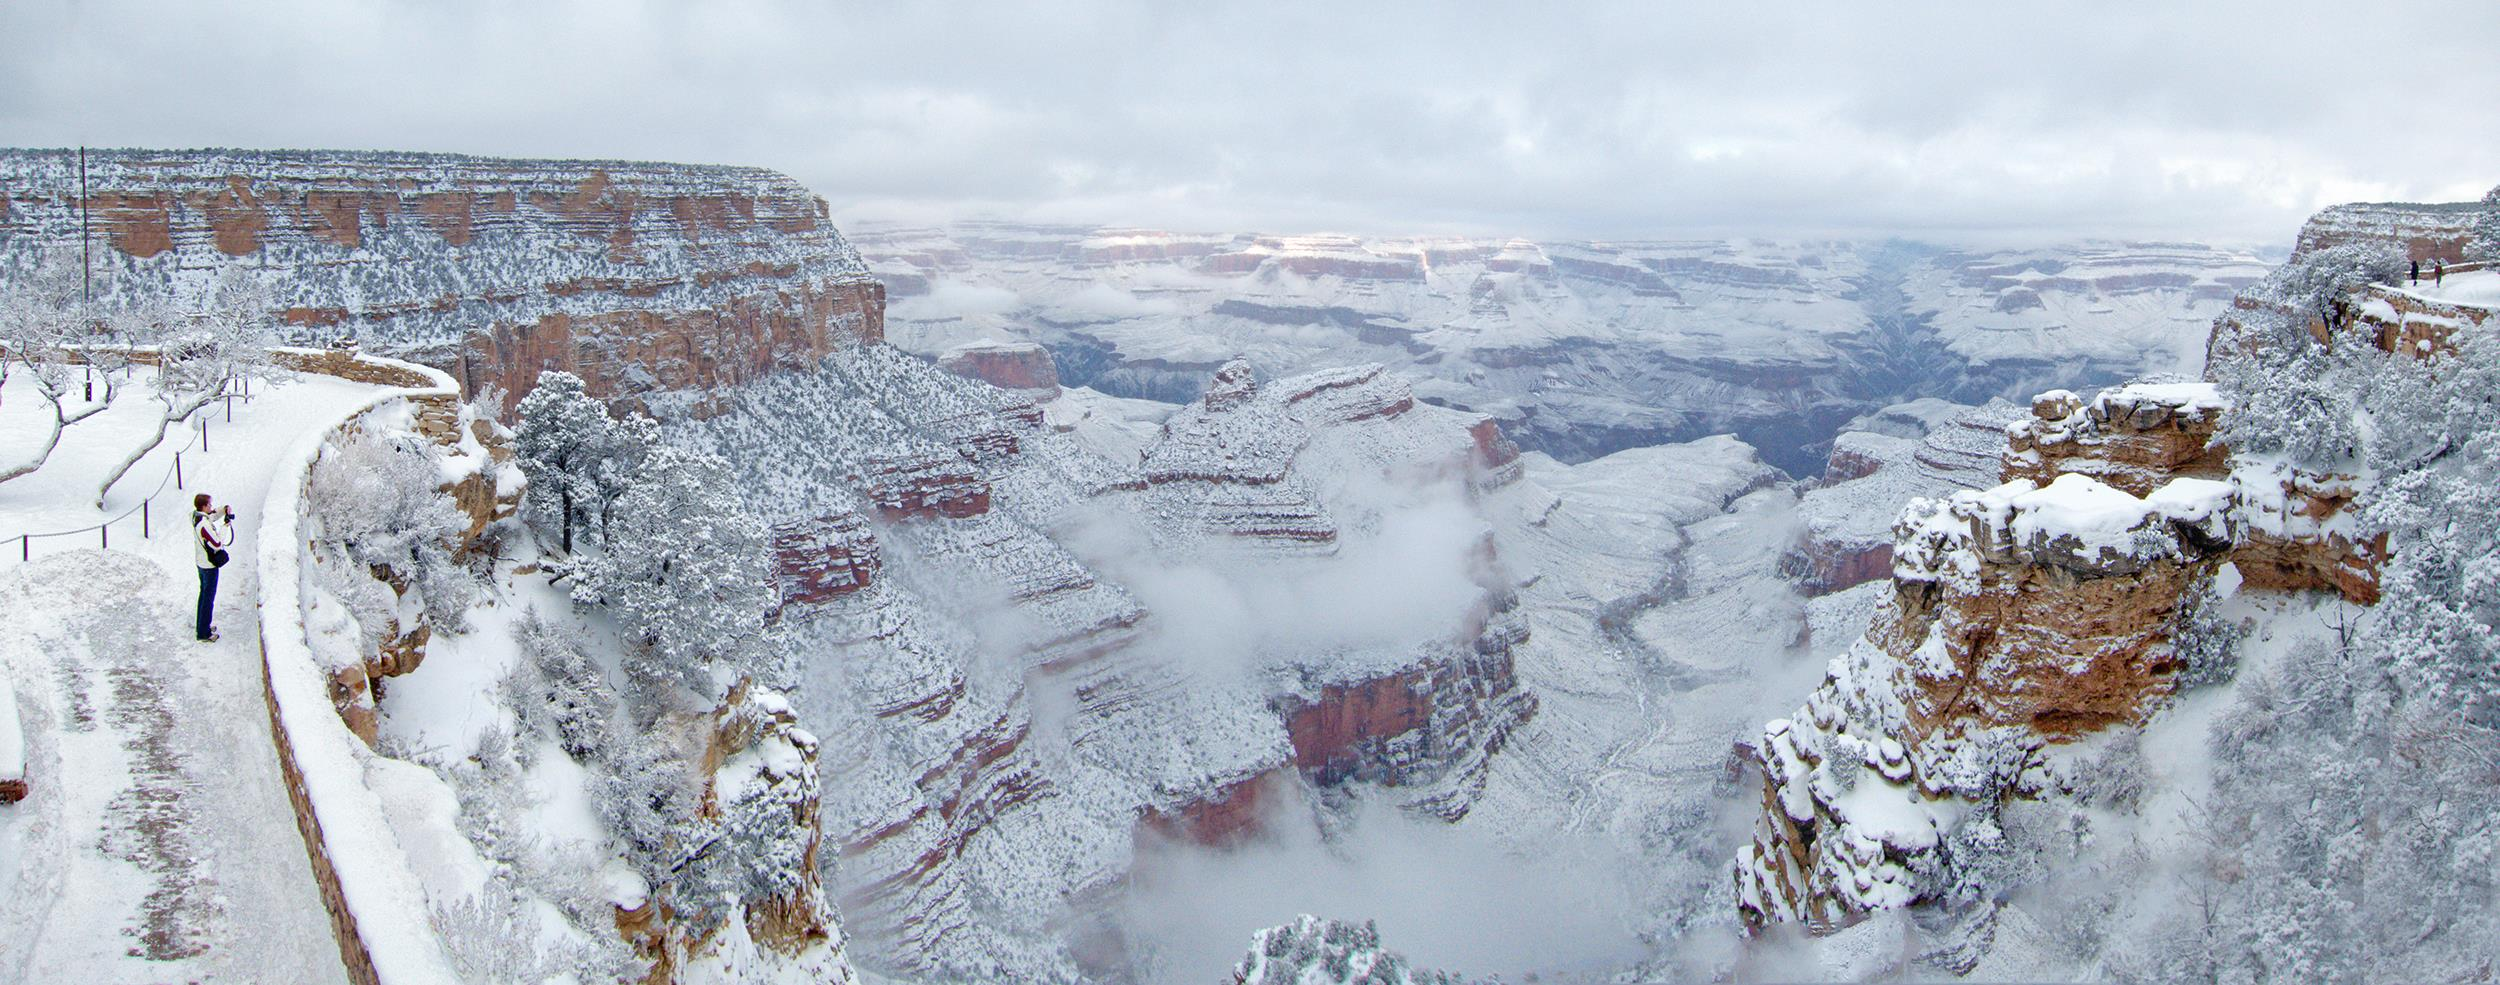 grand canyon enters new year covered in snow nbc news. Black Bedroom Furniture Sets. Home Design Ideas